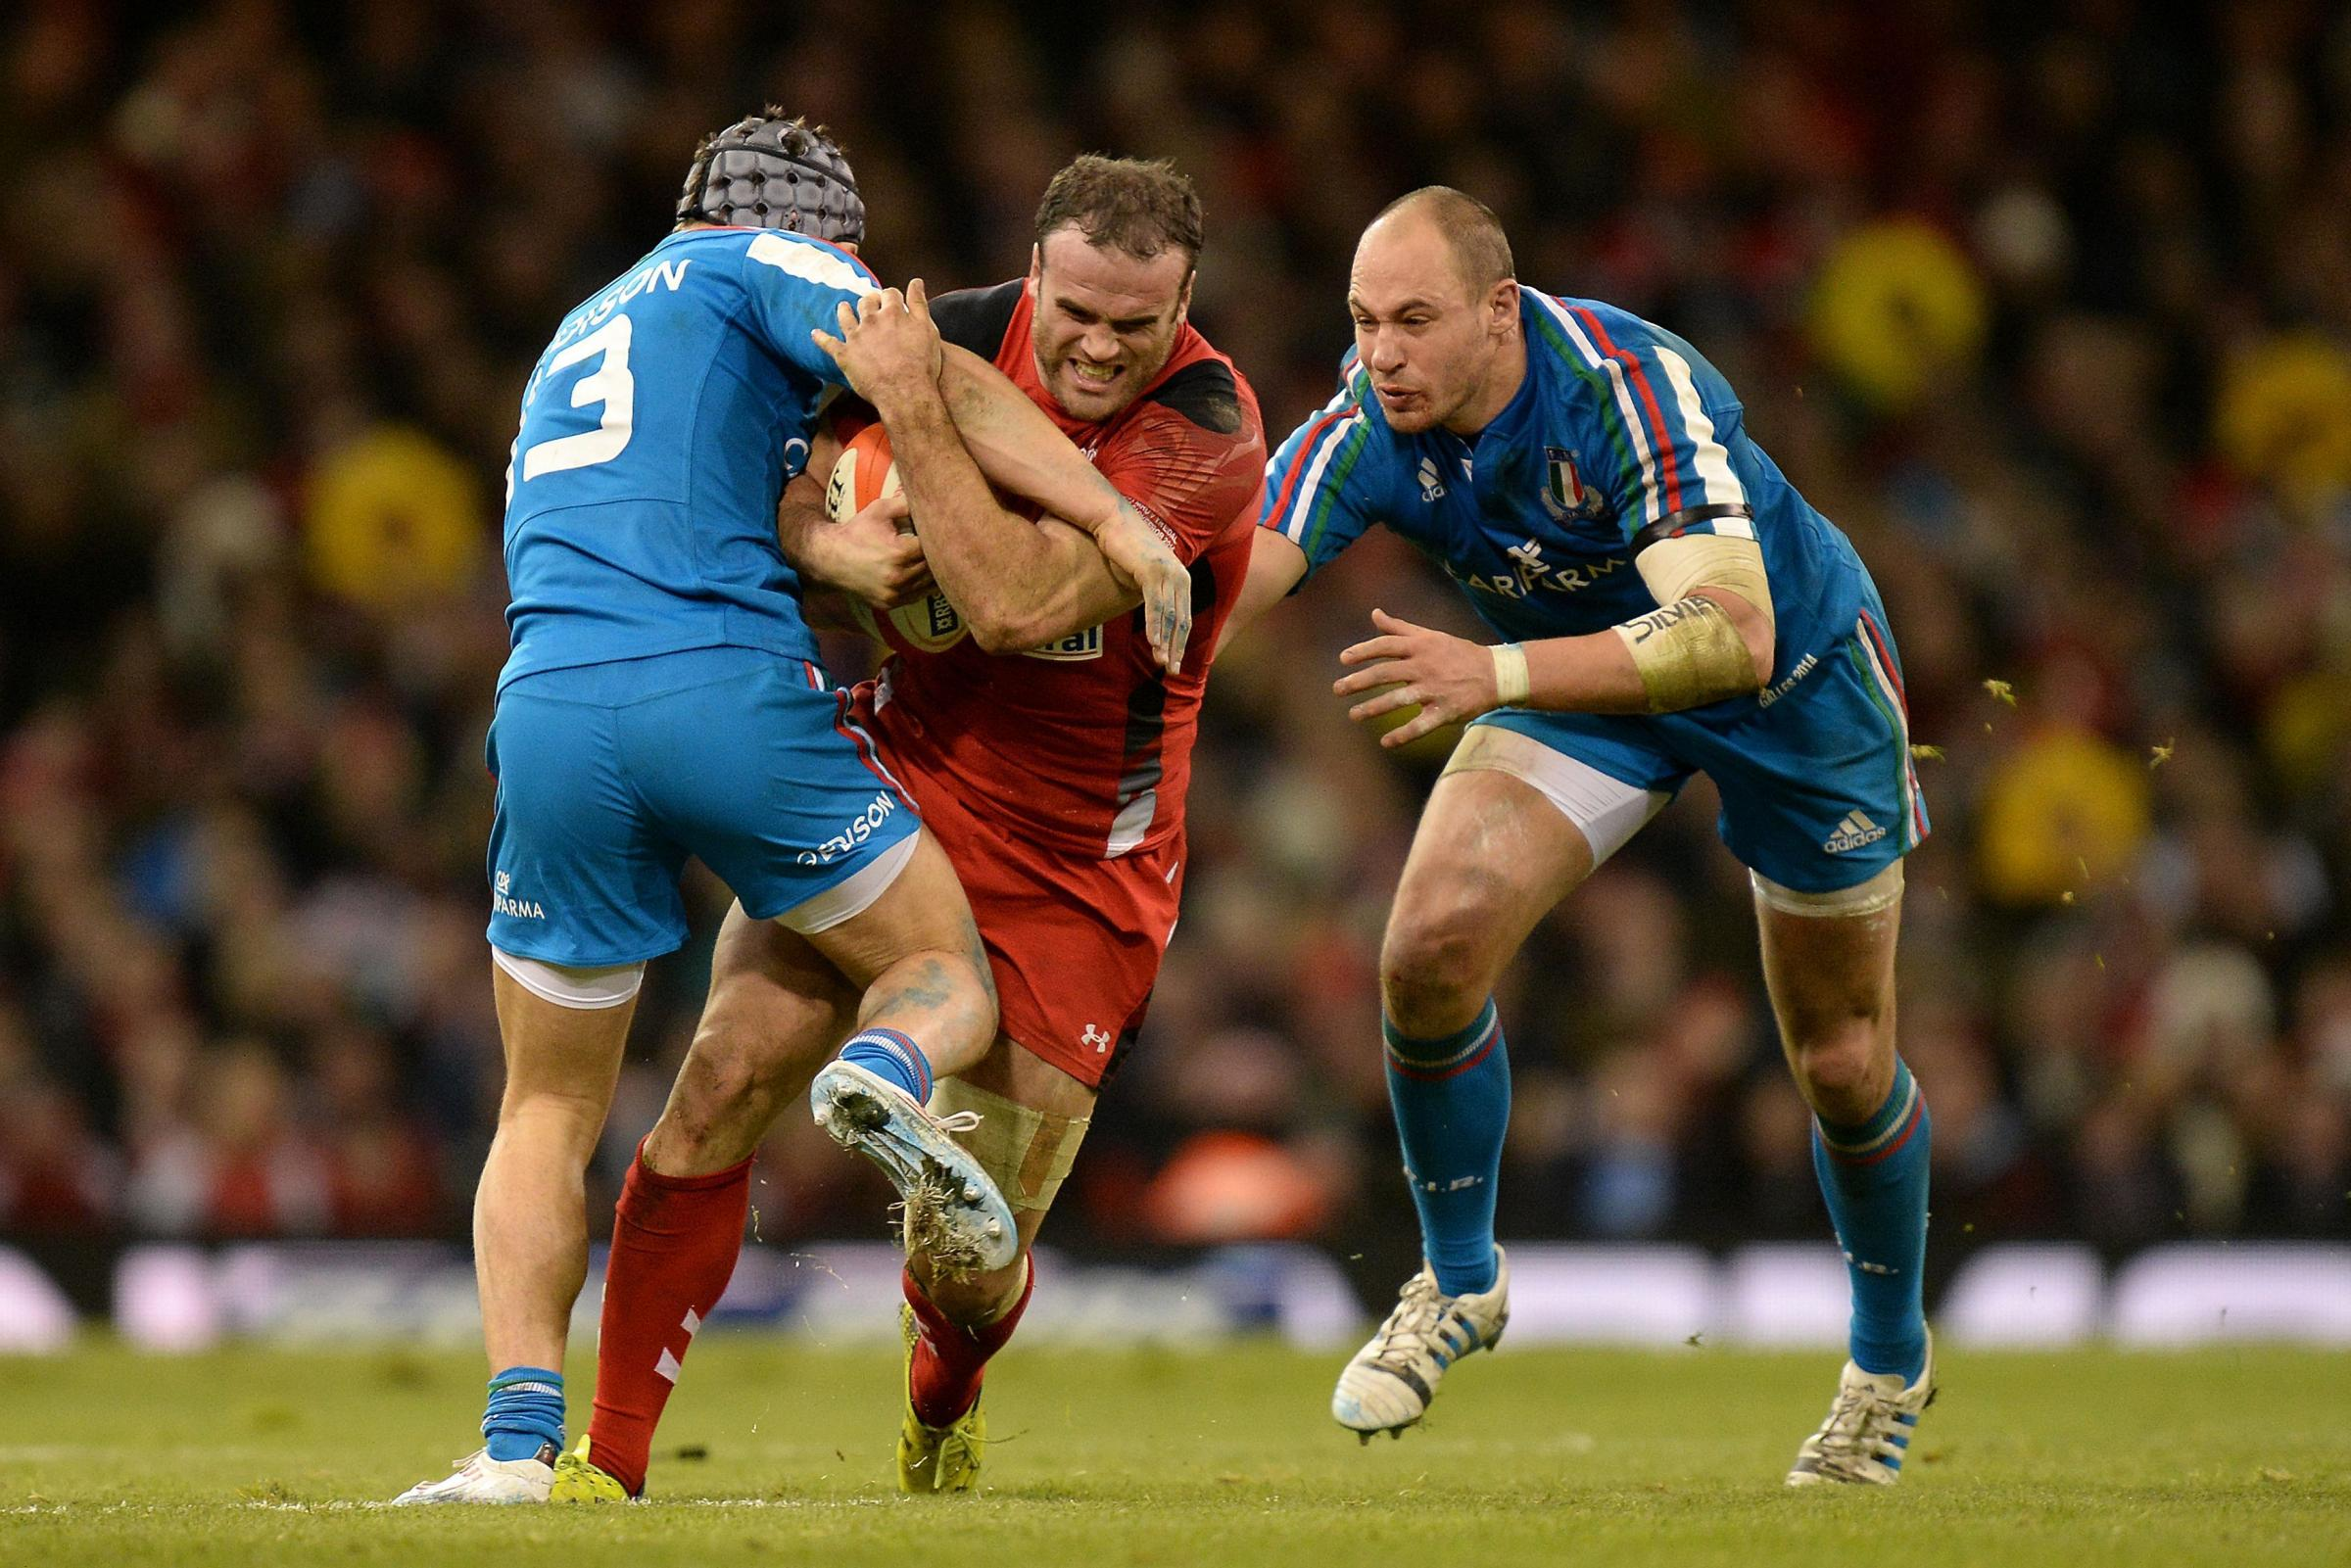 Wales' Jamie Roberts (centre) runs away from Italy's Sergio Parisse (right) into a tackle from Italy's Michele Campagnaro (left) during the RBS 6 Nations match at the Millennium Stadium, Cardiff. PRESS ASSOCIATION Photo. Picture date: Saturday